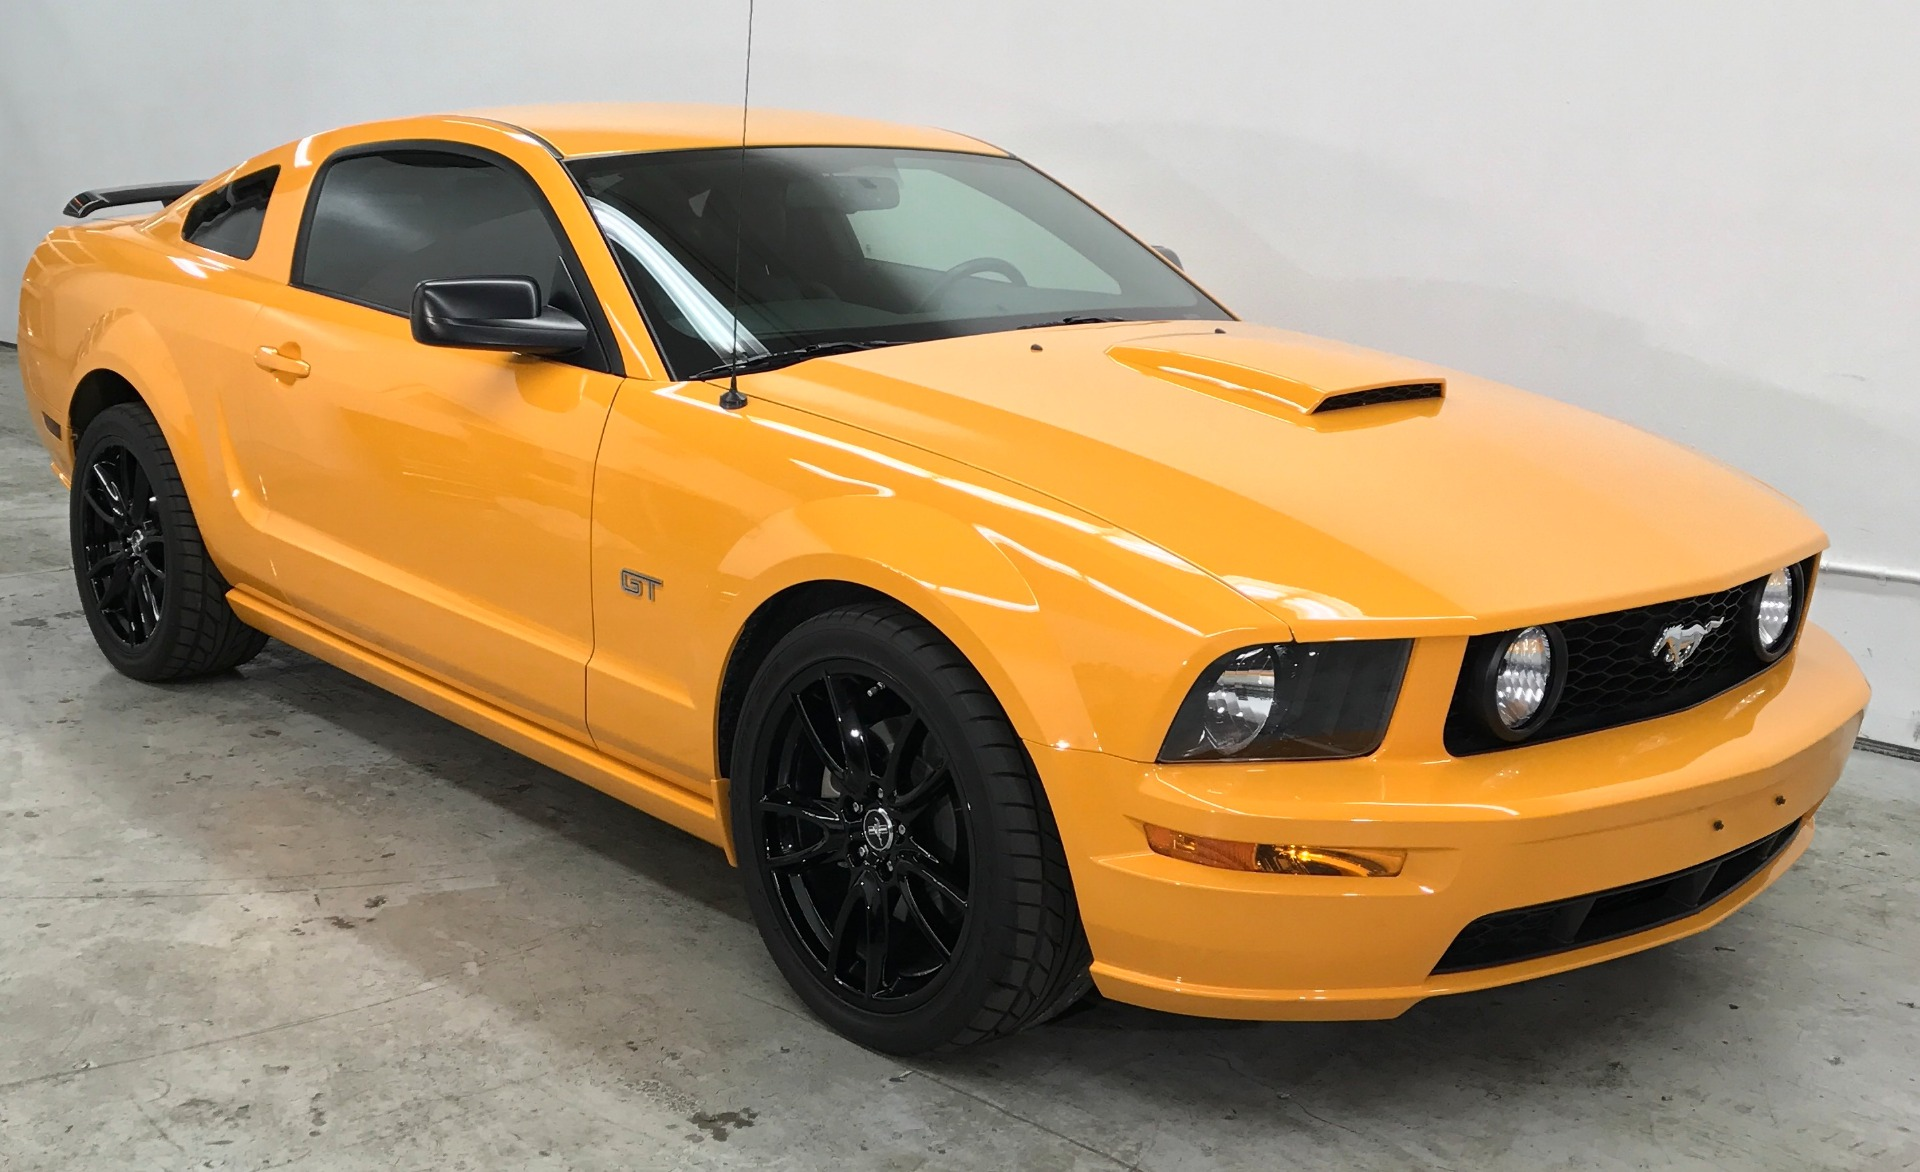 2007 ford mustang gt california special pictures 2008 Ford Mustang Reviews and Rating Motor Trend